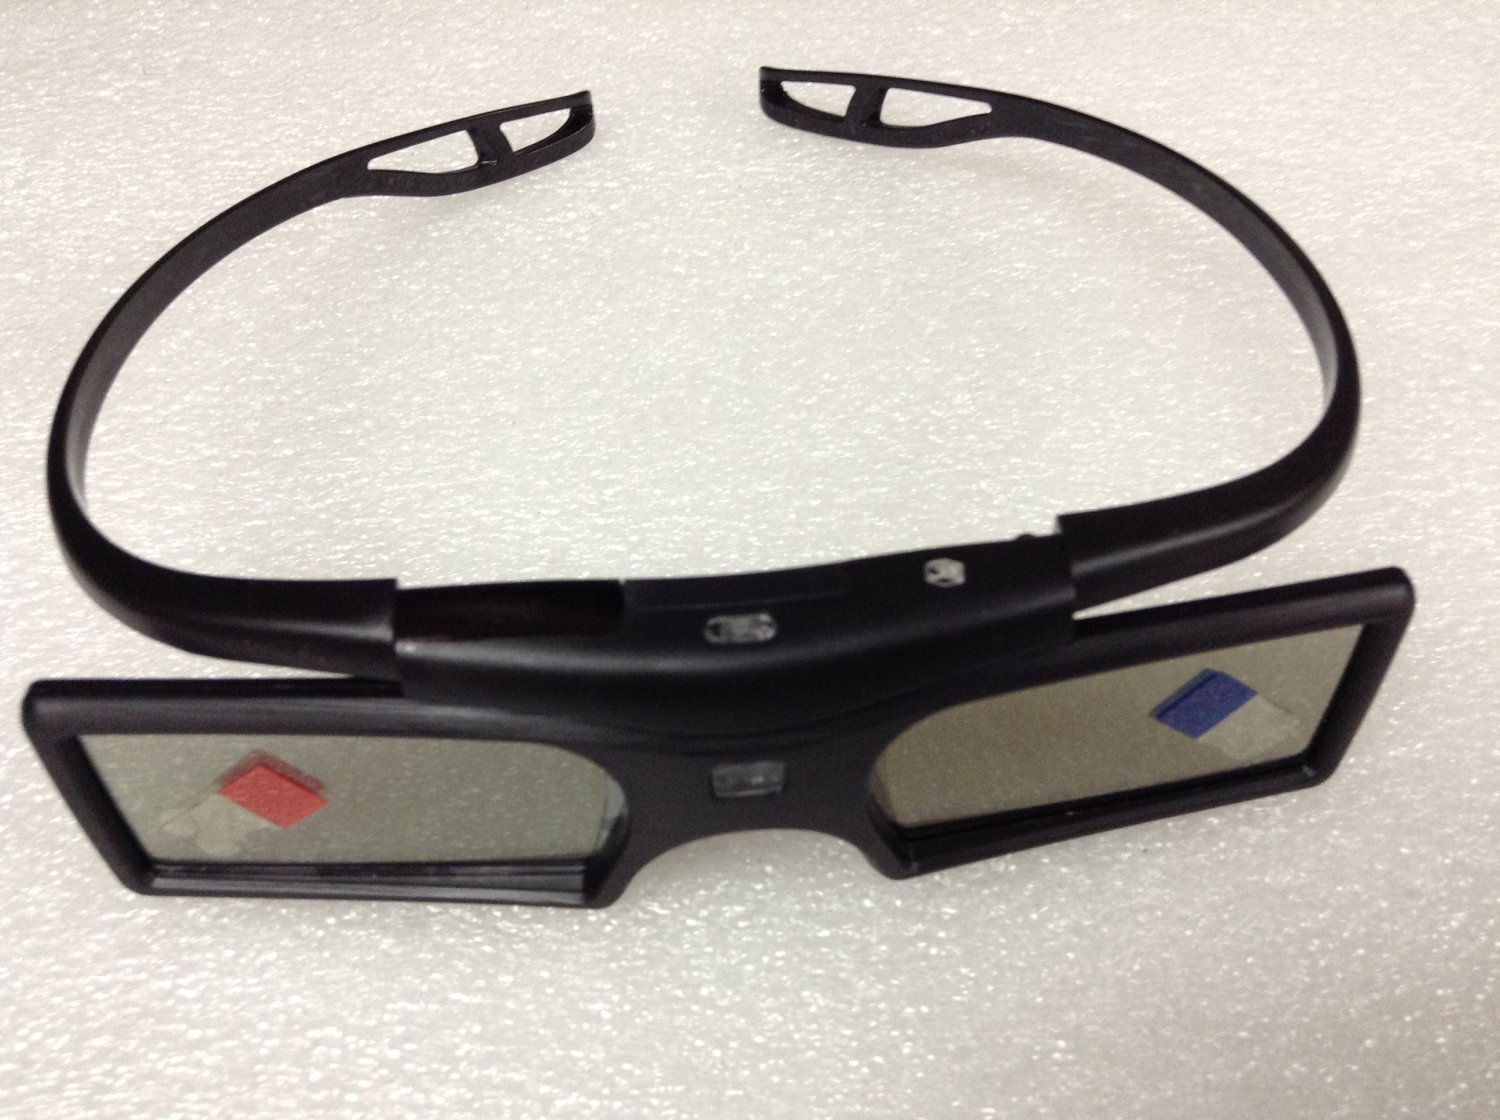 3D ACTIVE SHUTTER GLASSES FOR SAMSUNG TV SSG-3100GB SSG3100GB BRAND NEW